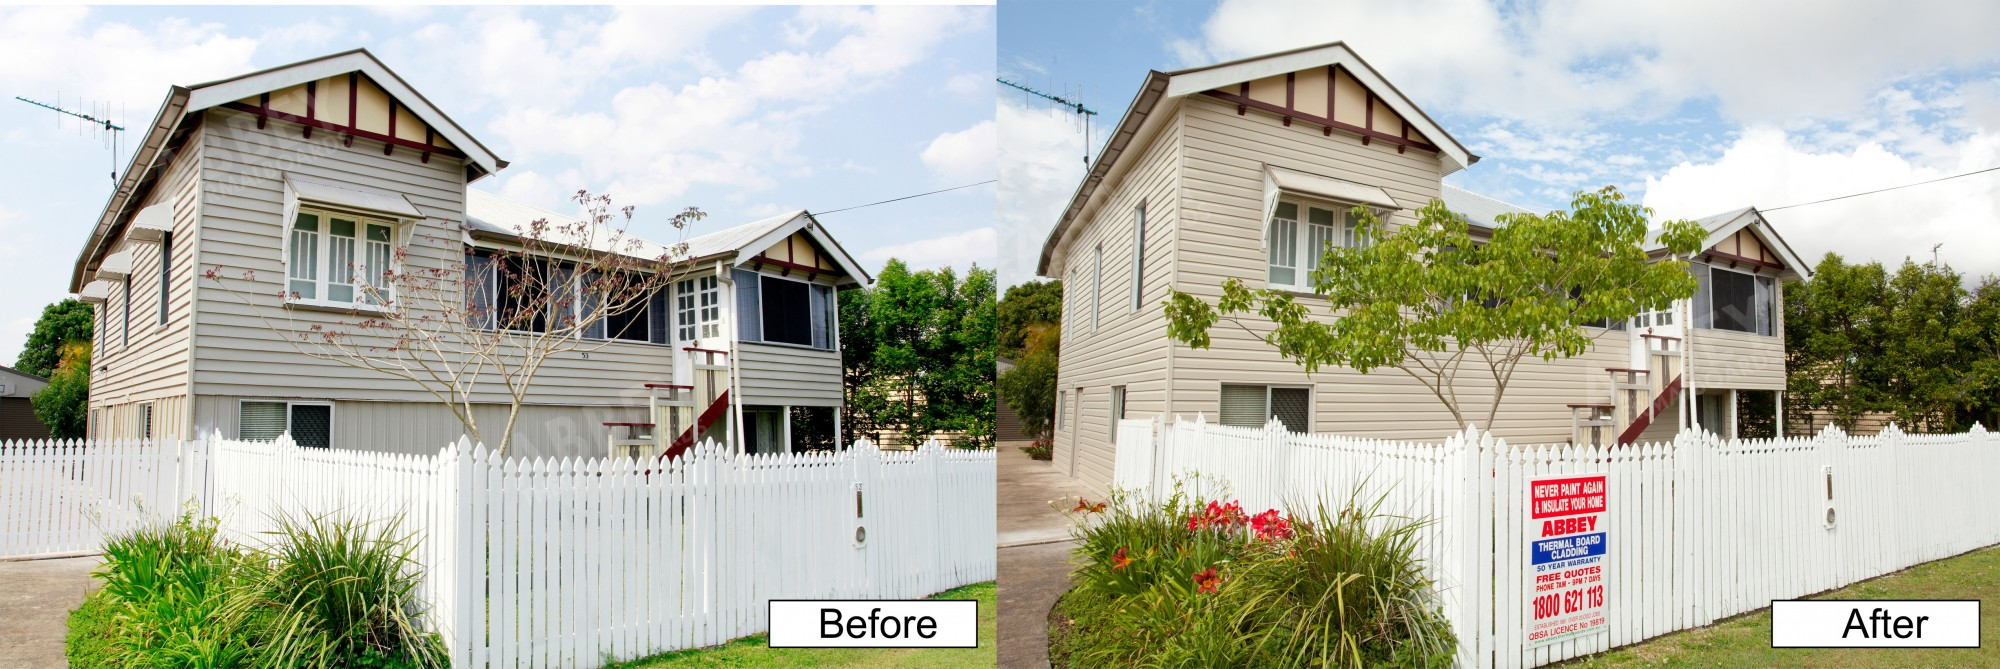 Queenslander home before and after shots of cladding installed by Abbey.